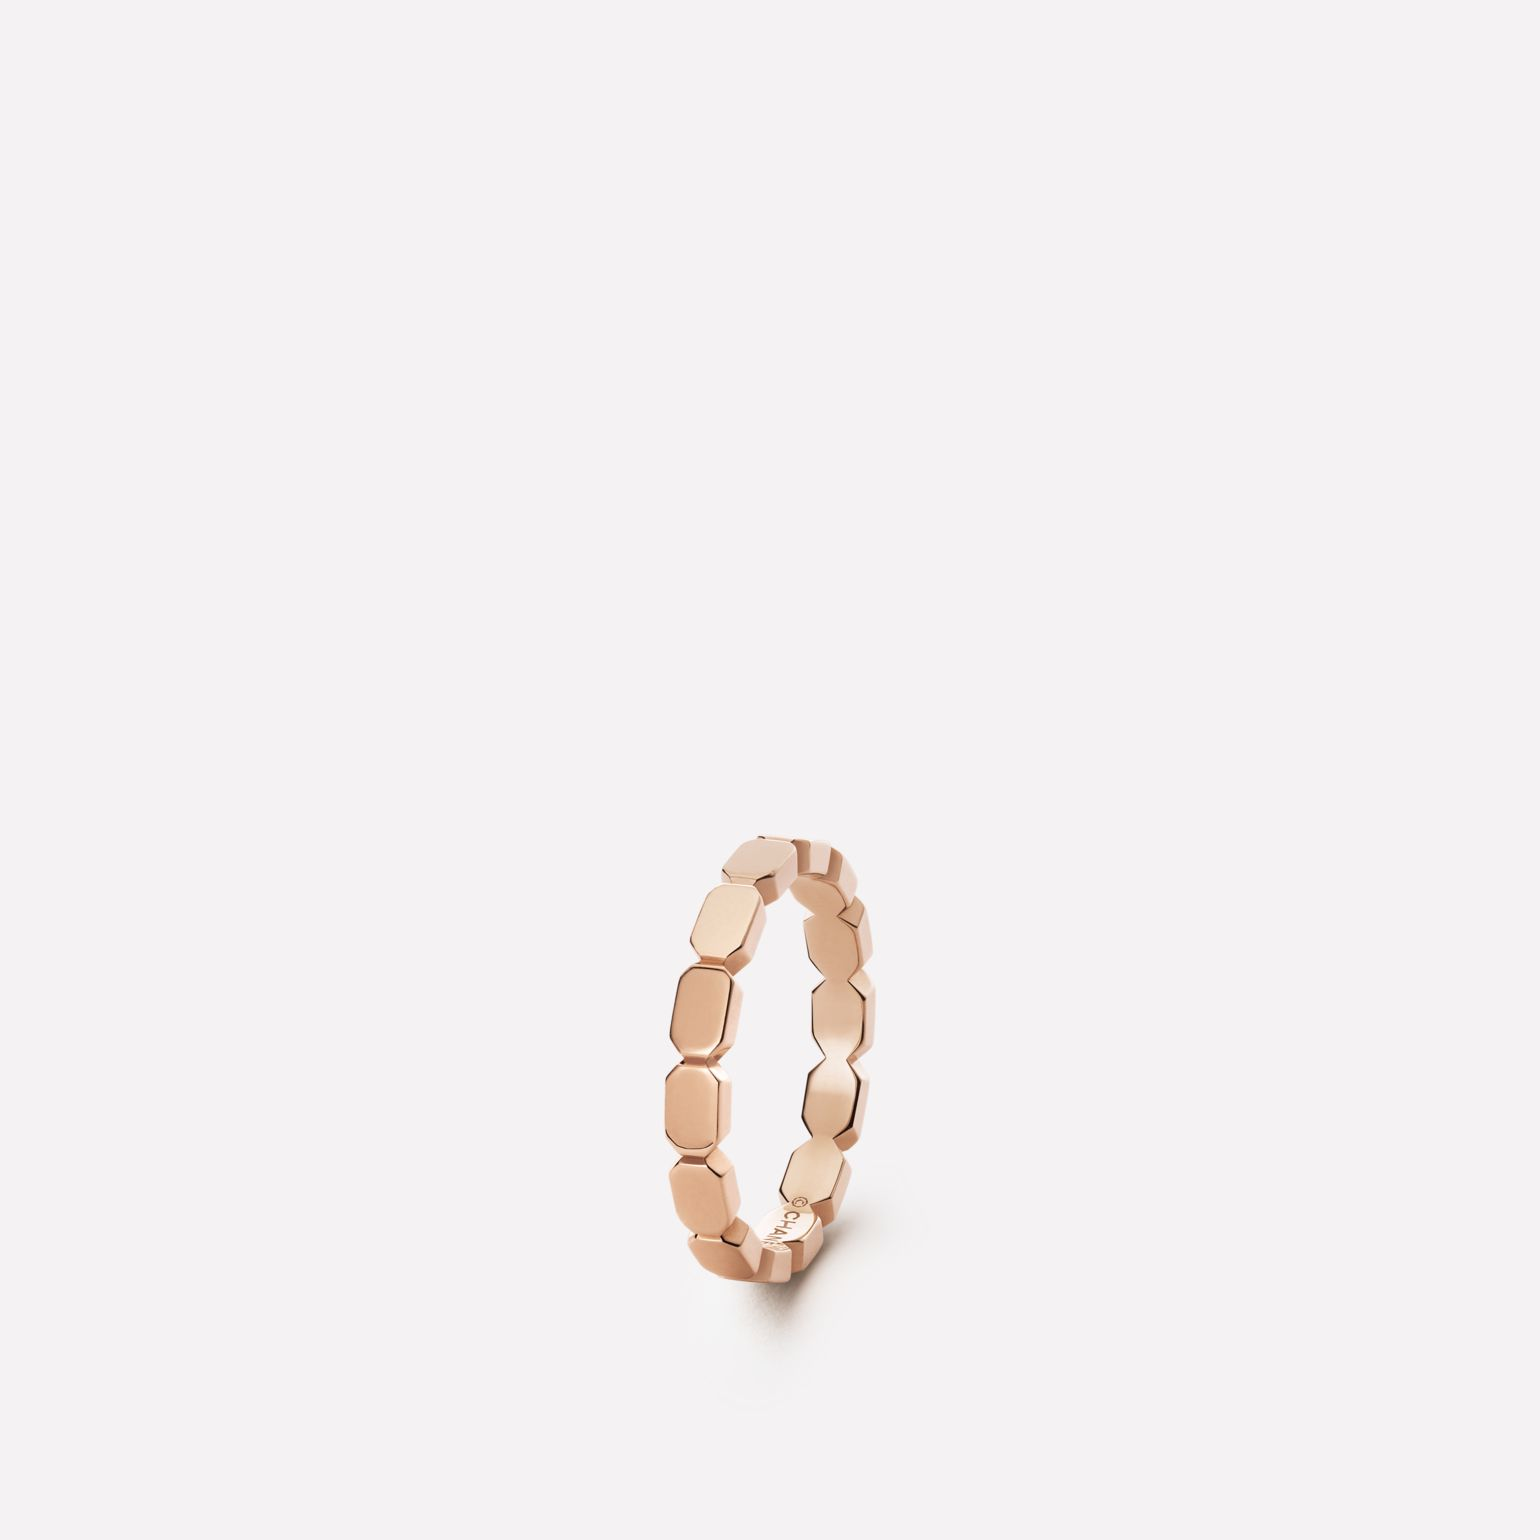 Baroque Ring Baroque ring in 18K pink gold